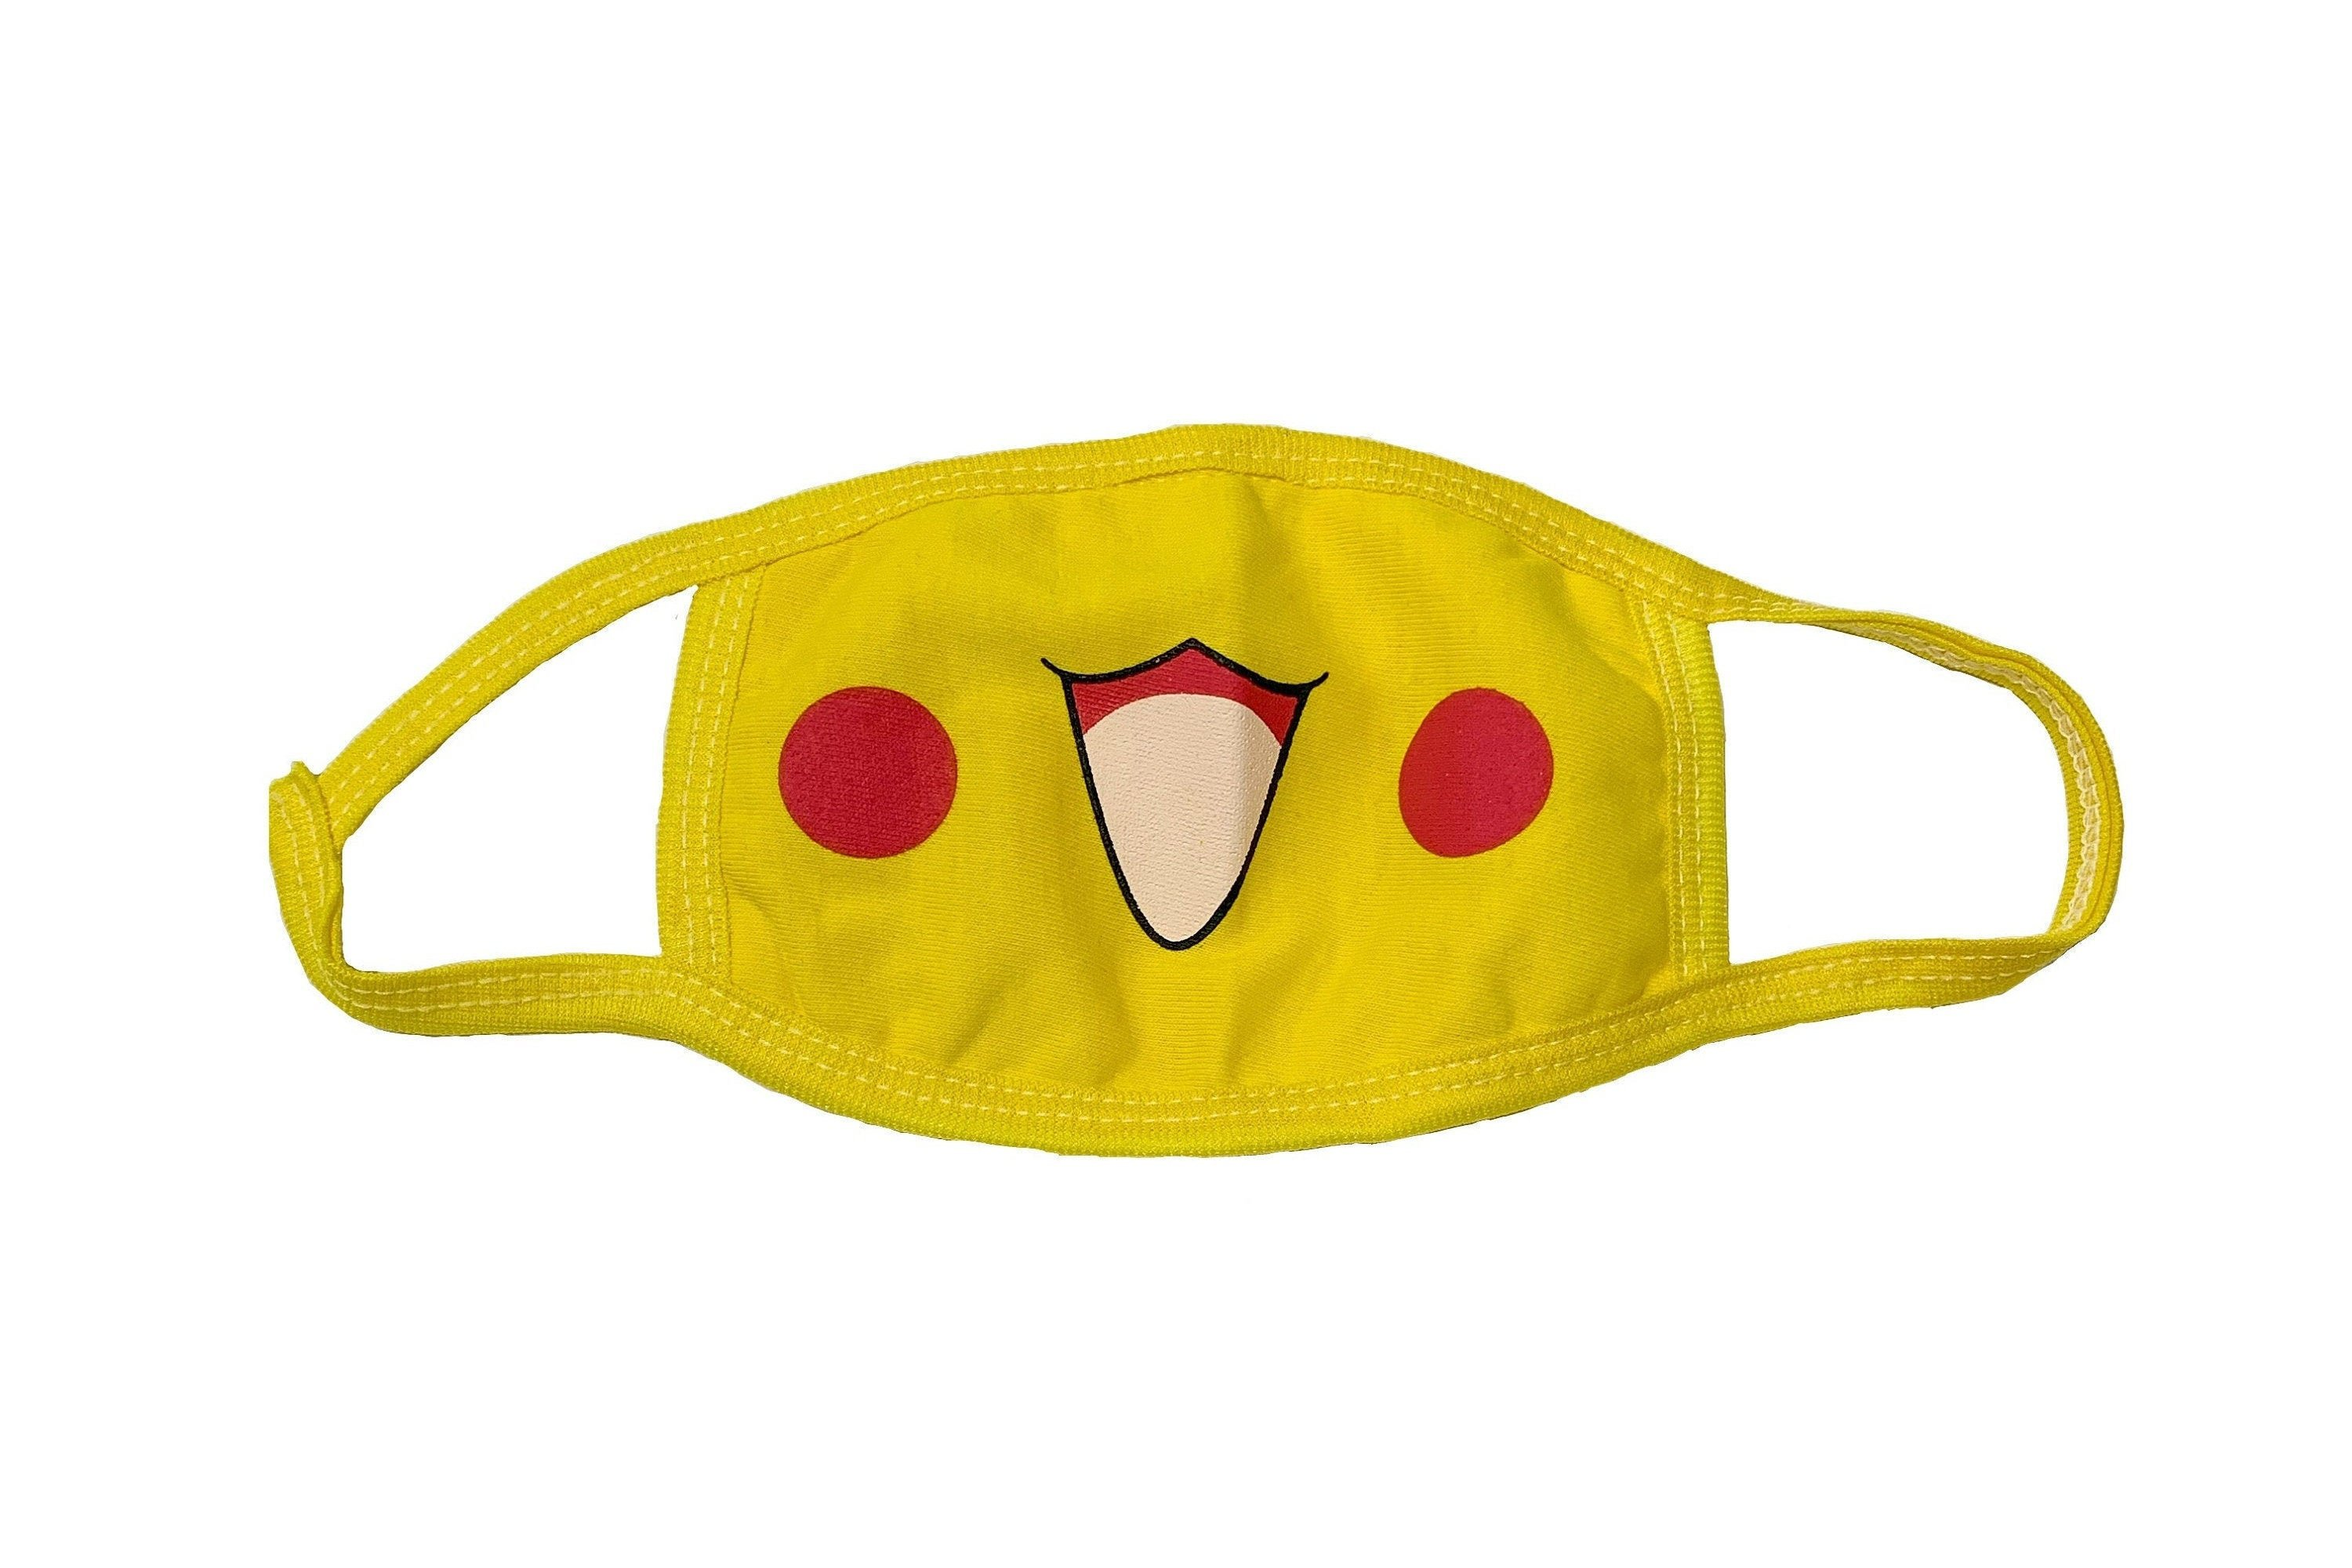 You can take a yellow face mask and add a little Pikachu flair to it!